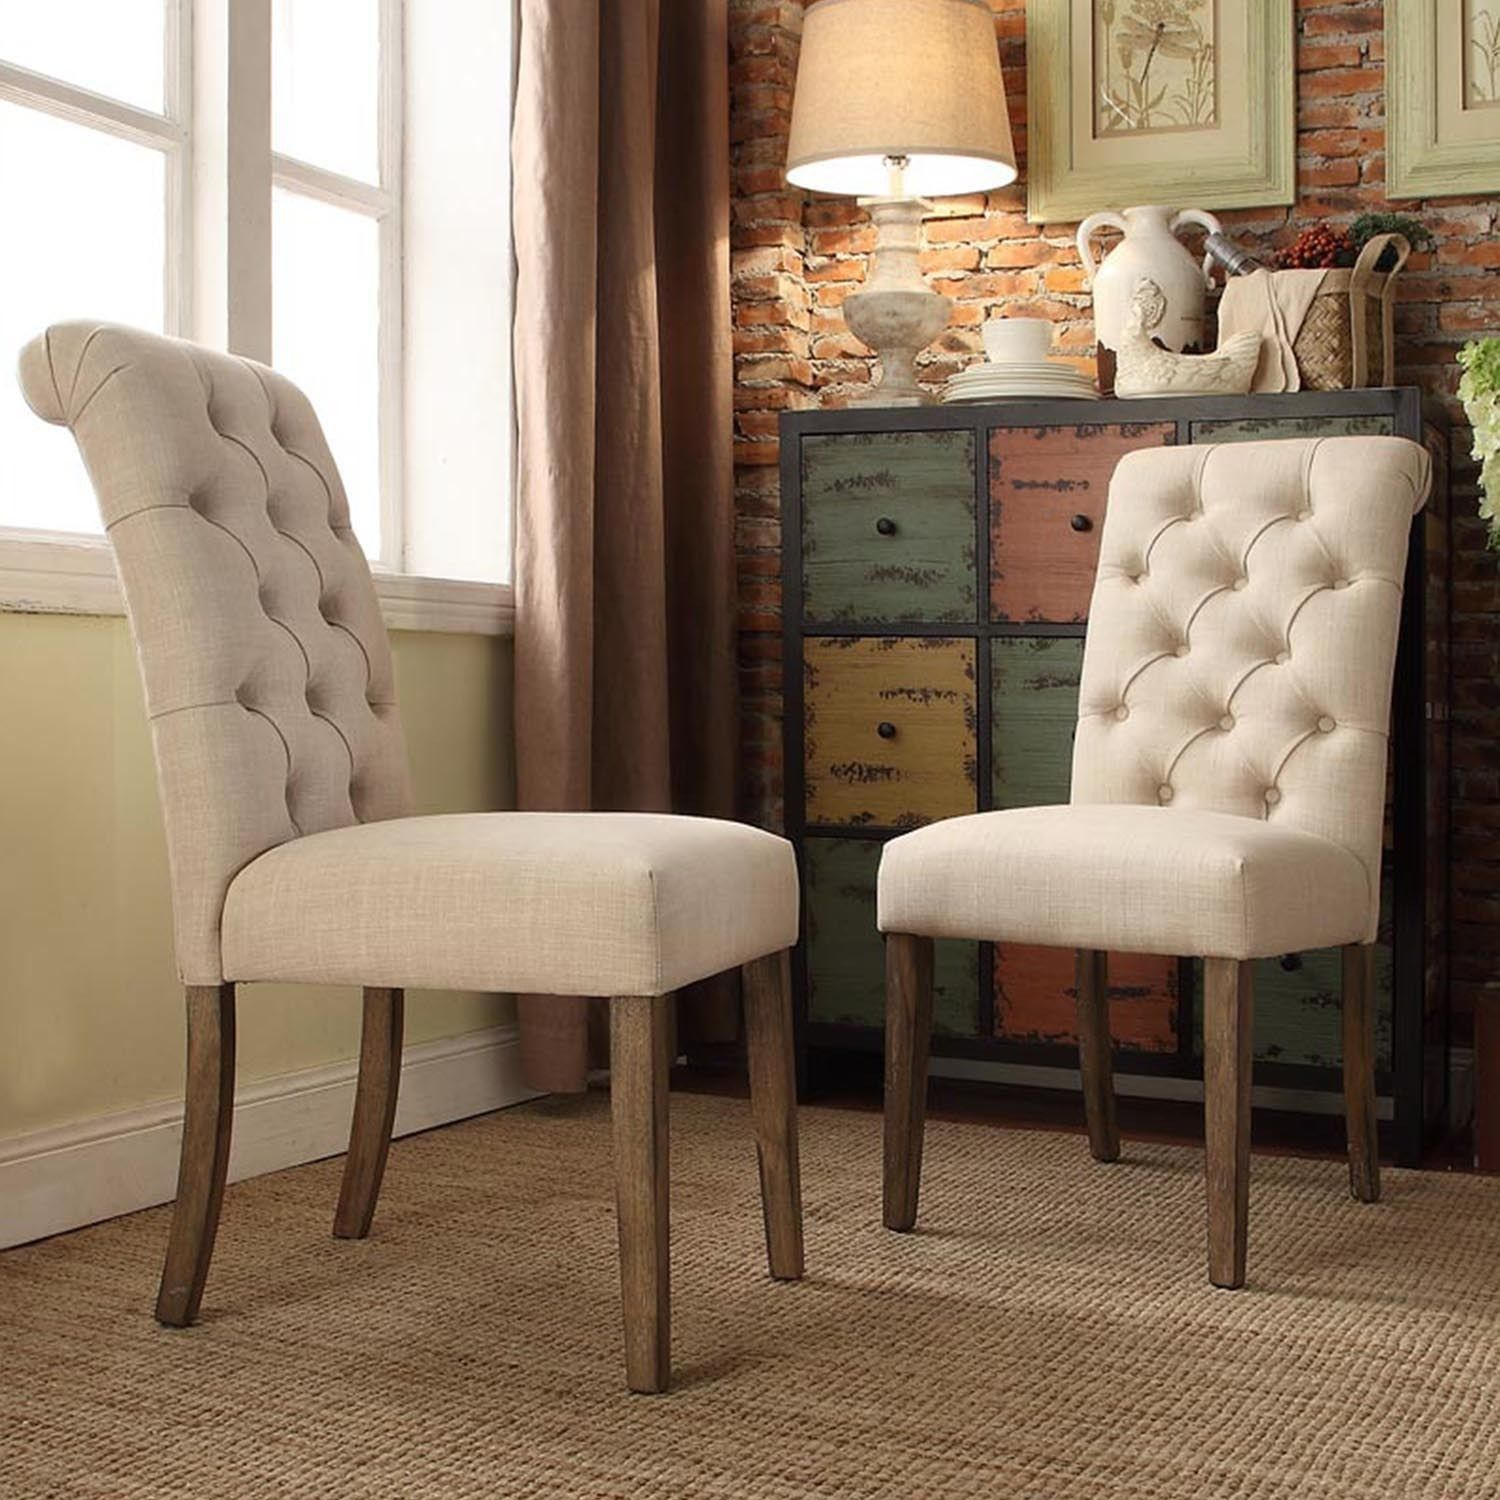 Benchwright Button Tufts Upholstered Rolled Back Parsons Chairs